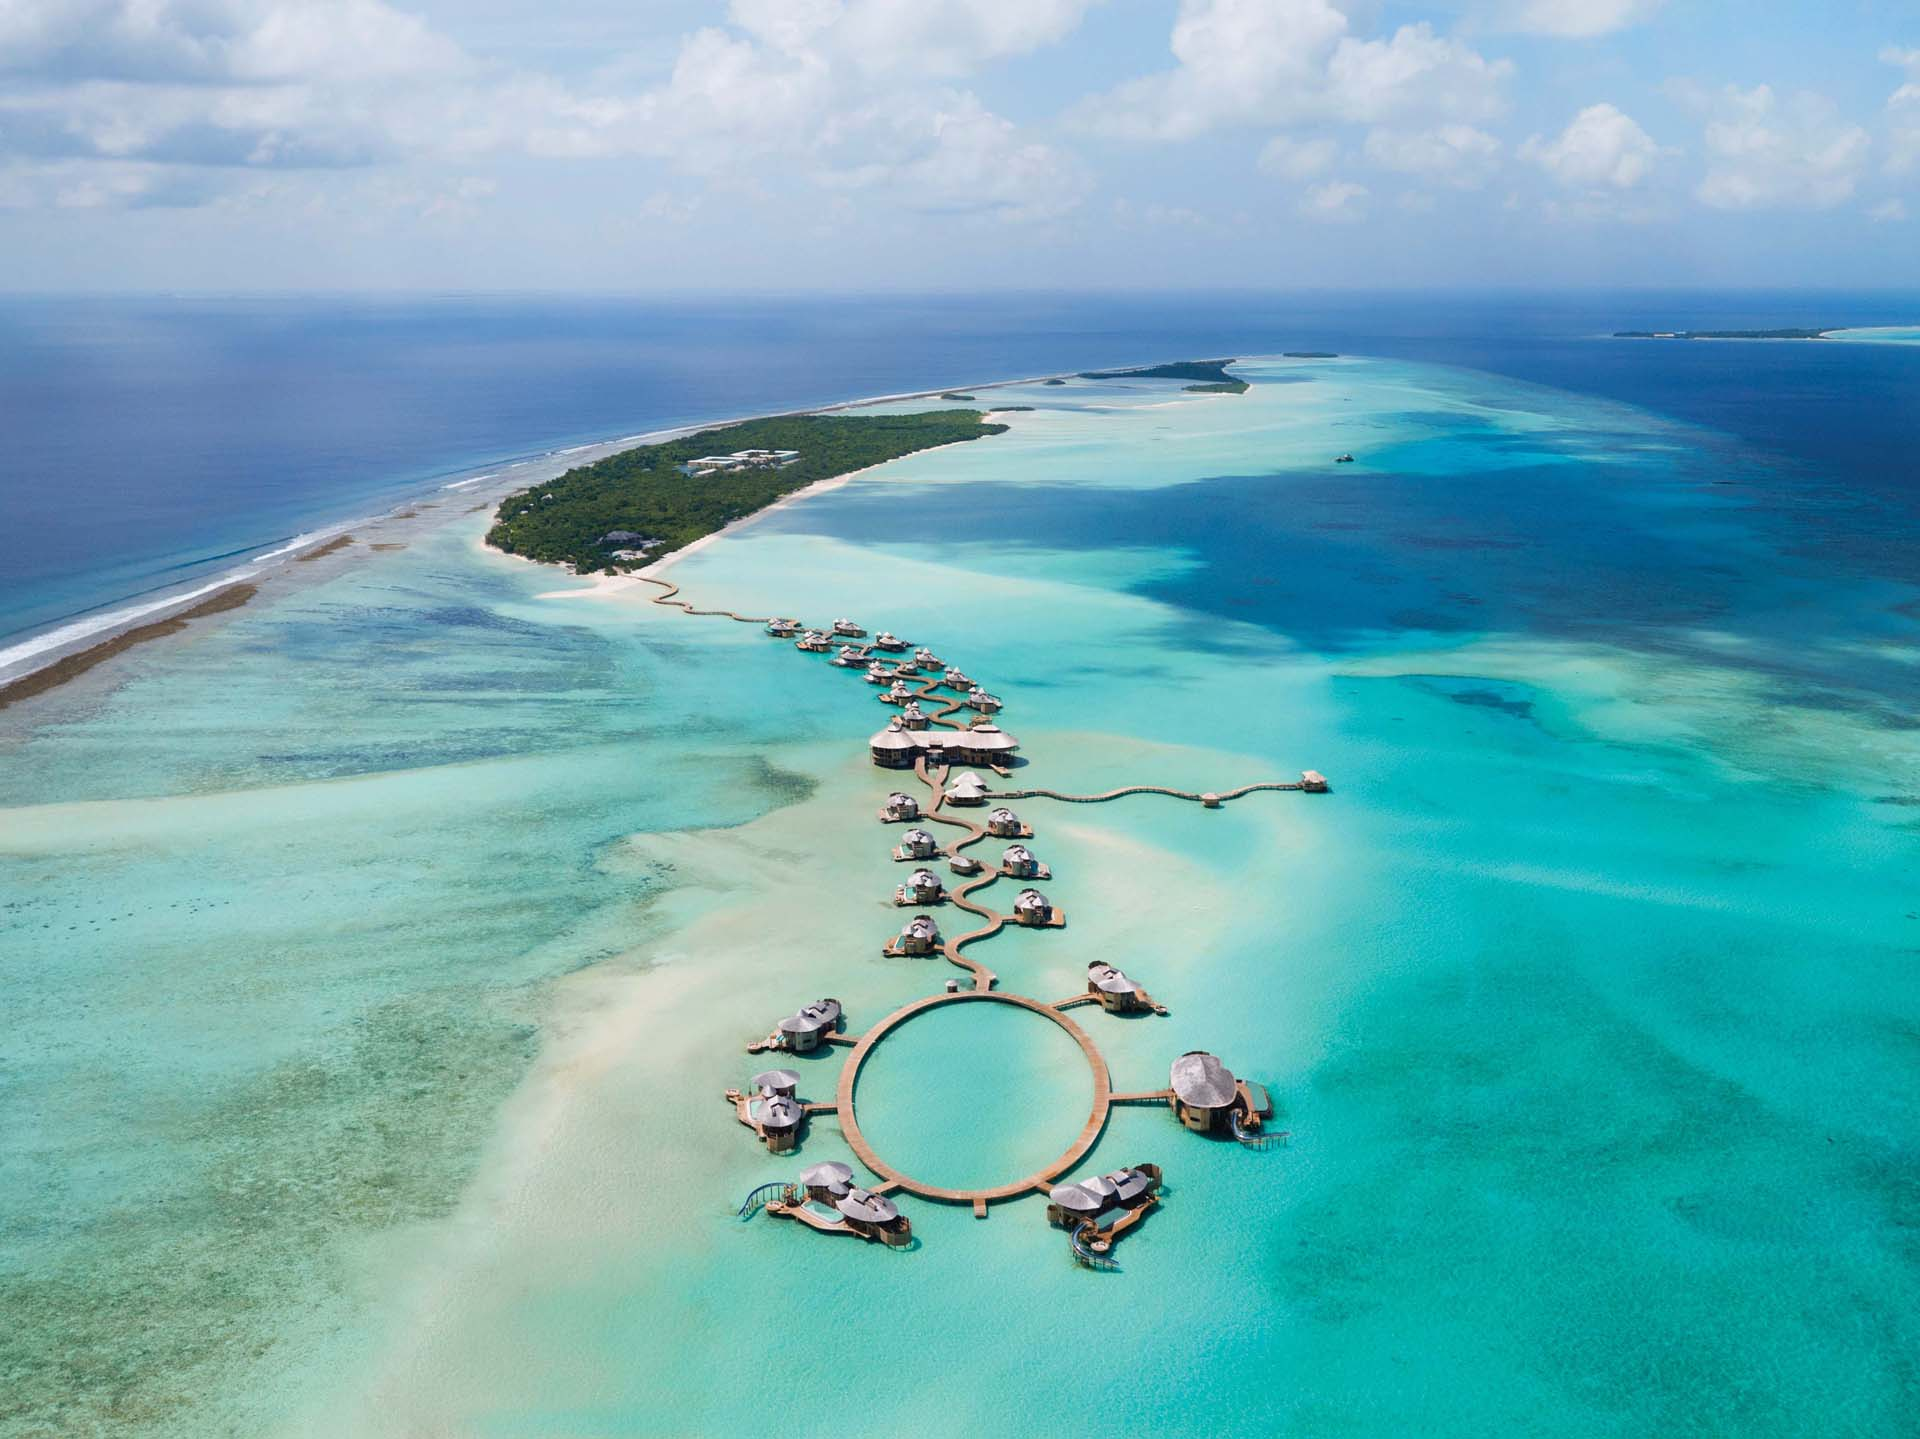 Aerial View of Soneva Jani Maldives